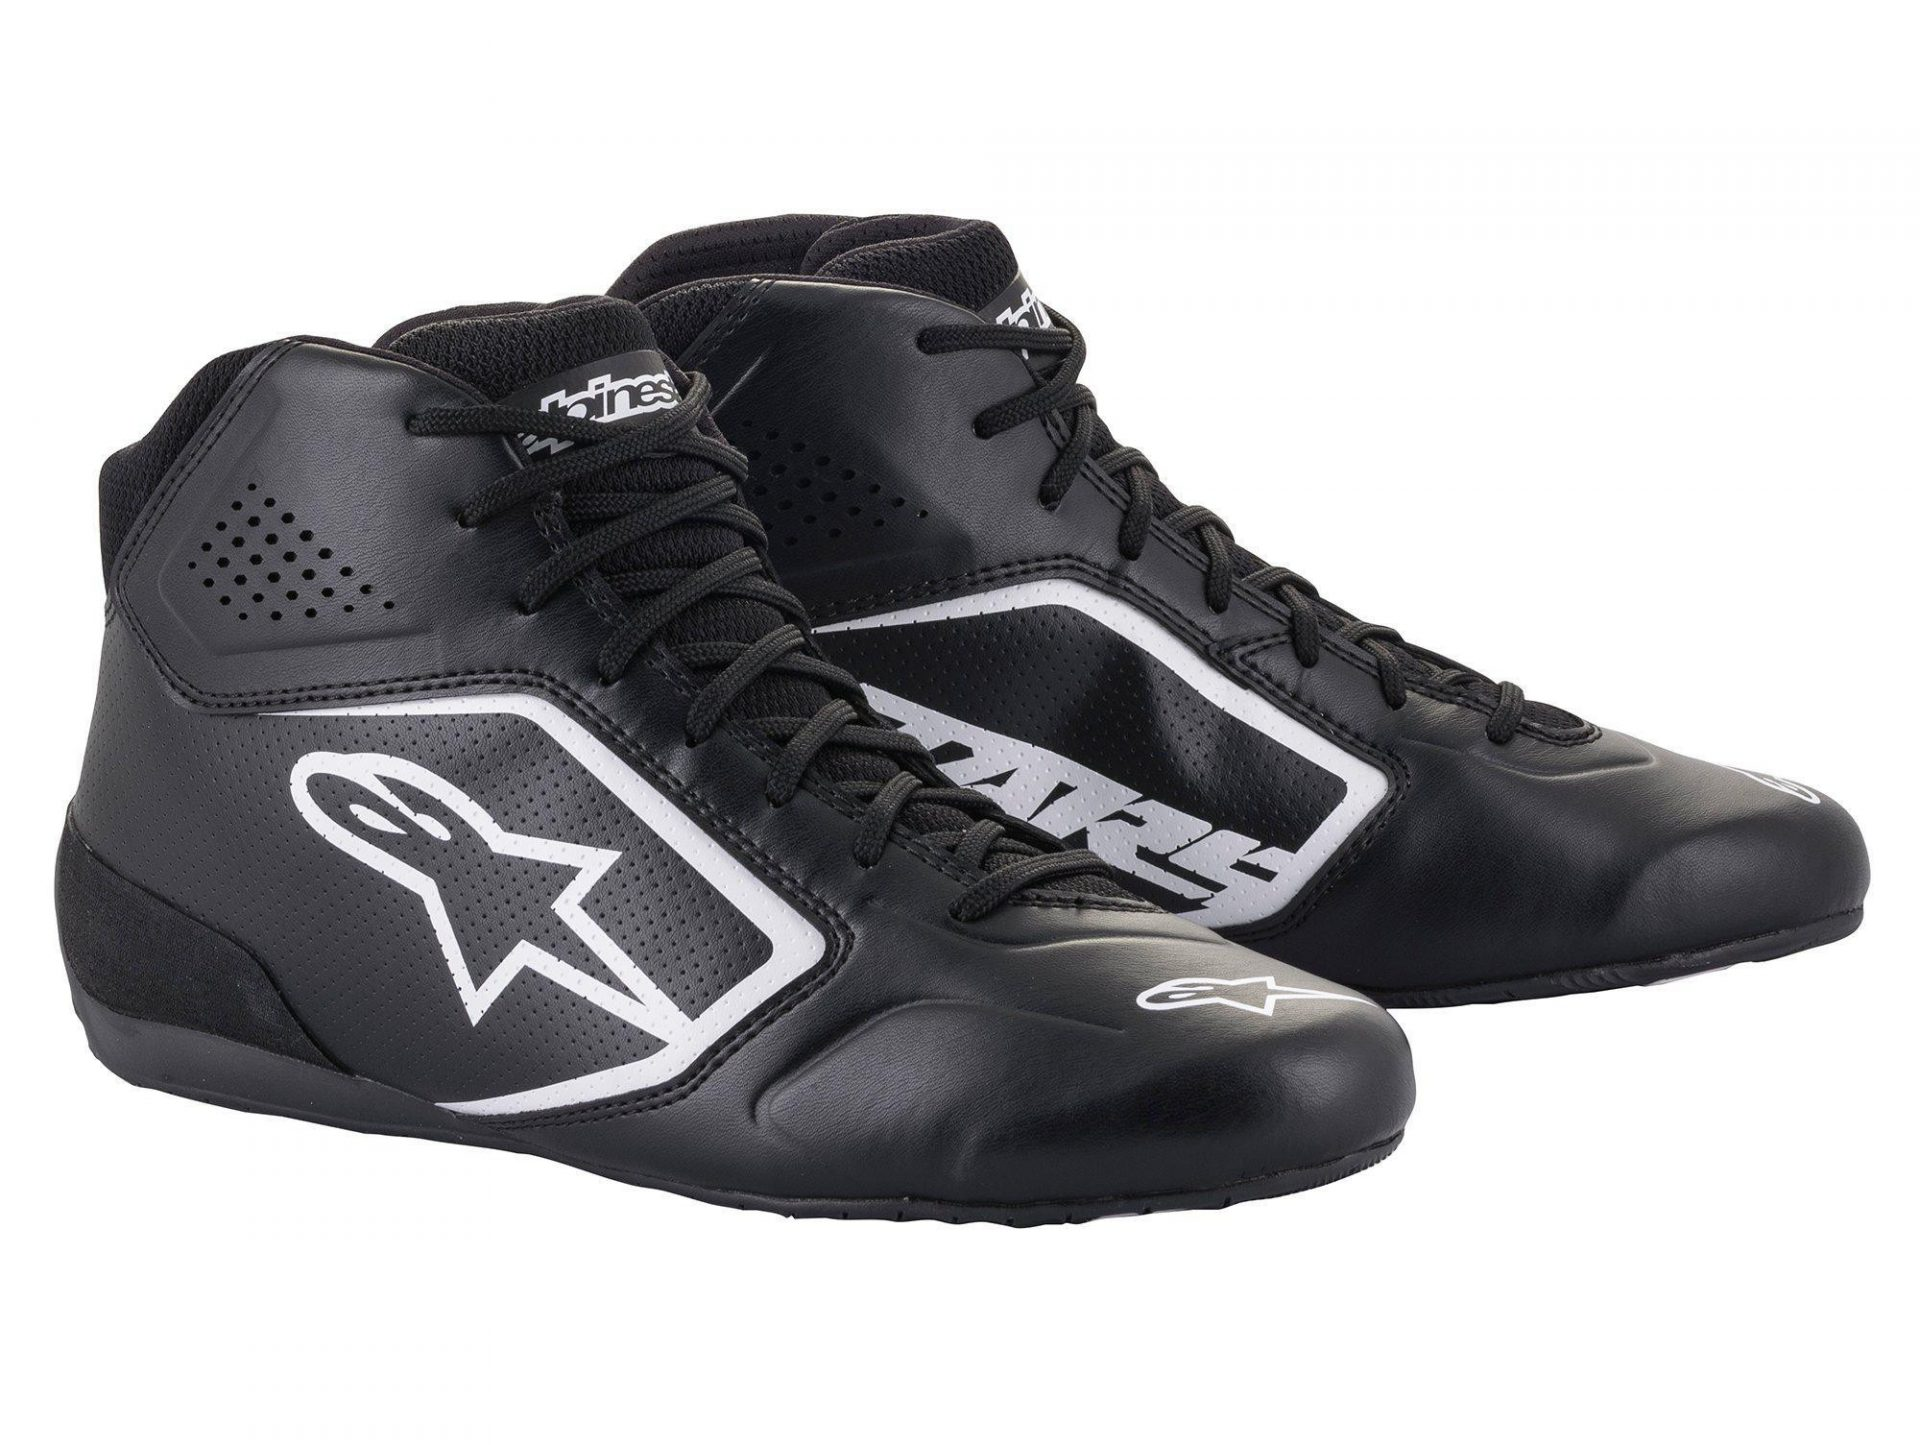 Нов продукт: Alpinestars Tech-1 K Start V2, Karting Shoes